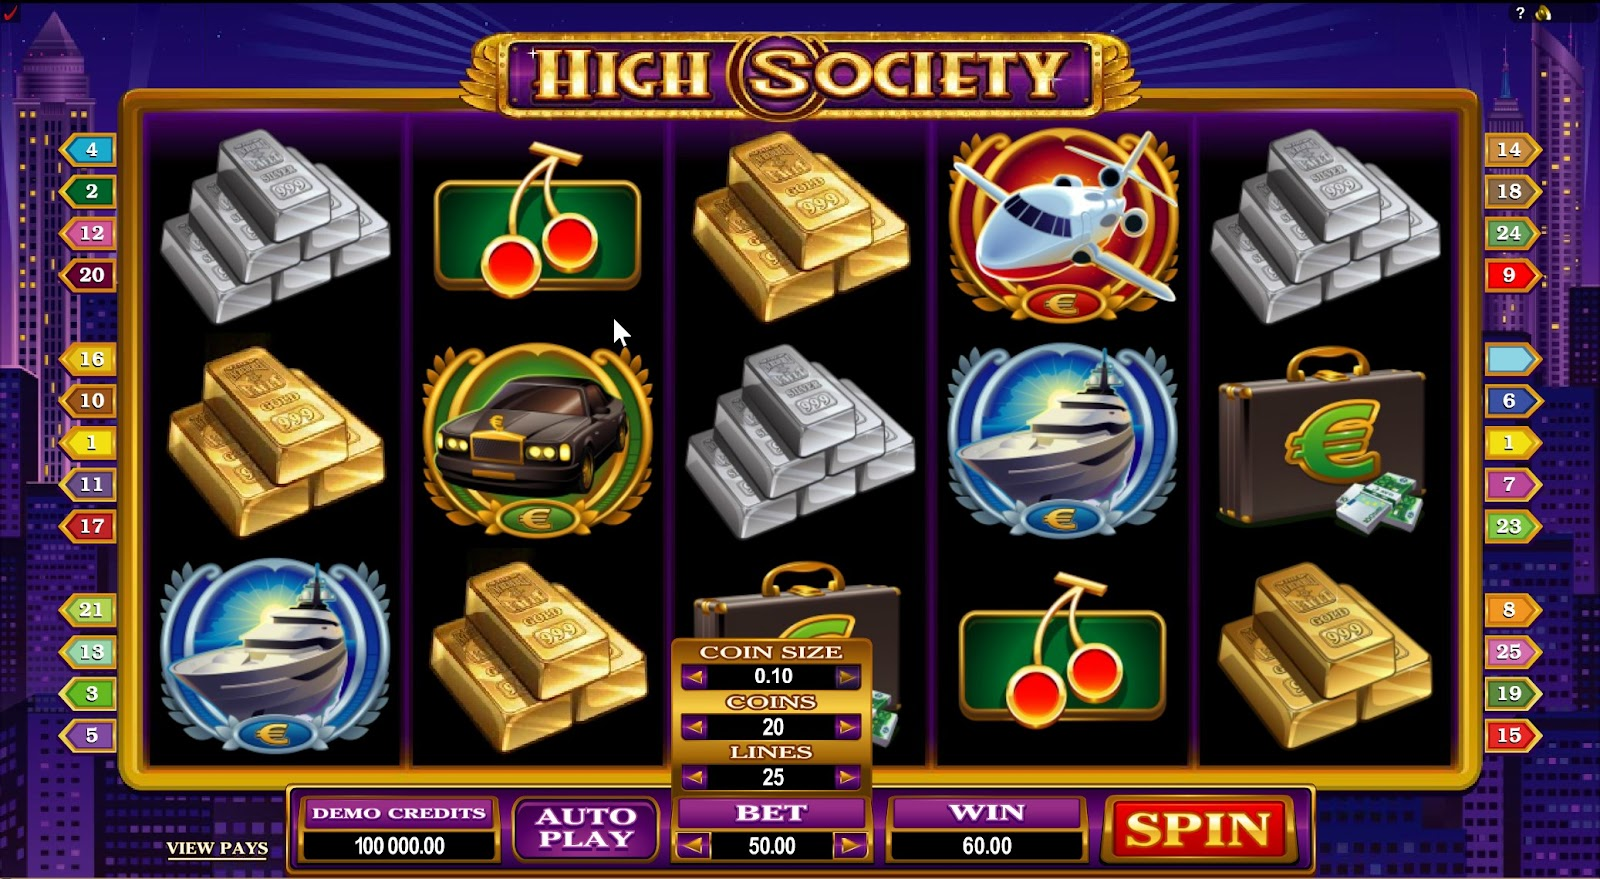 High Society Slots Game Review